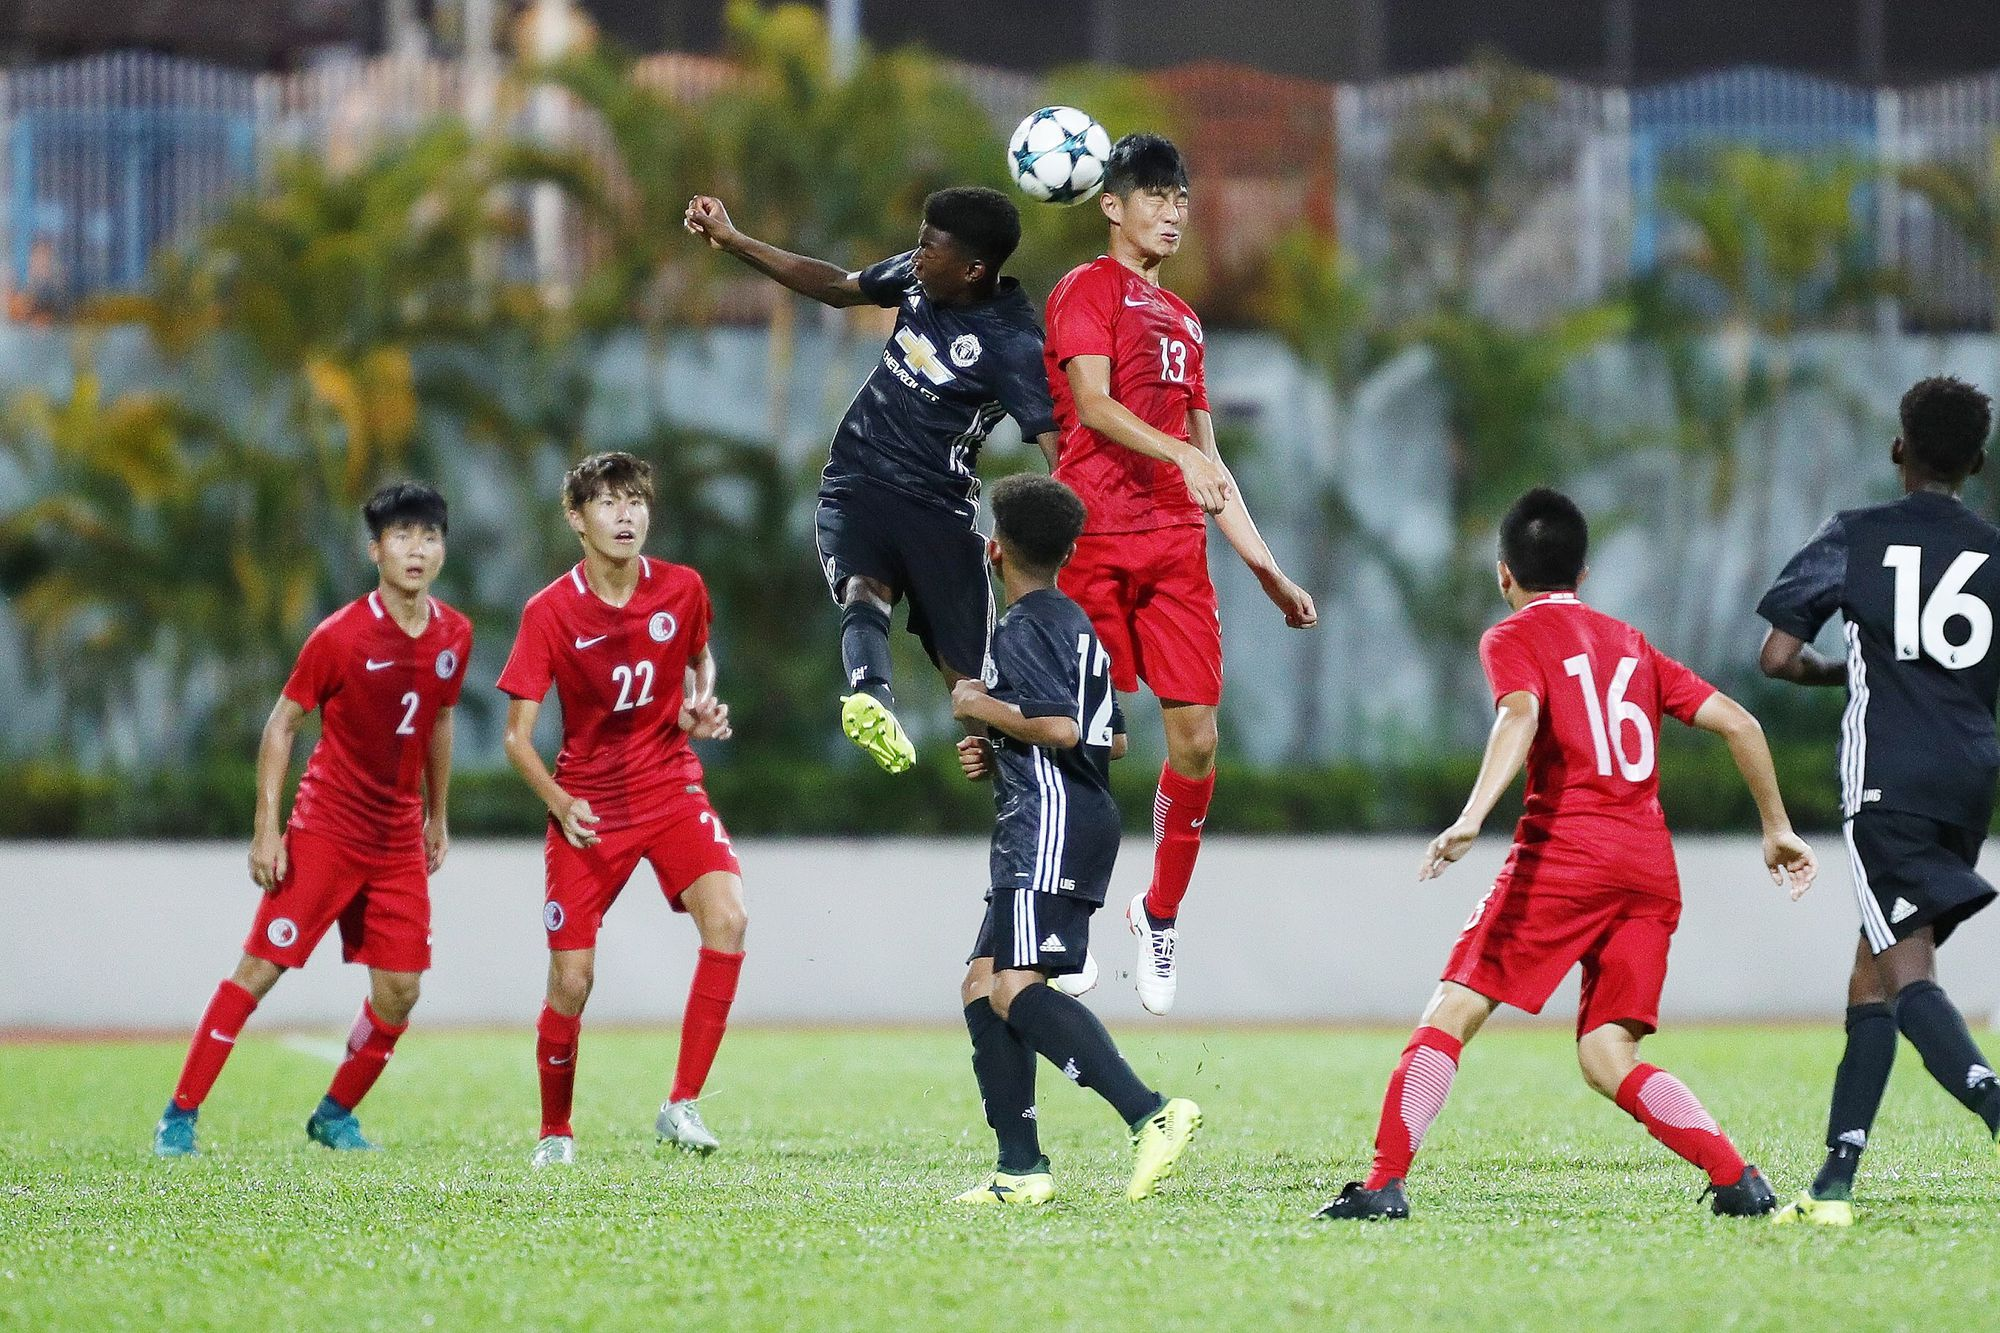 Manchester United Academy U16 Squad Round Off Fruitful Visit To Hong Kong Corporate News About Hkjc The Hong Kong Jockey Club